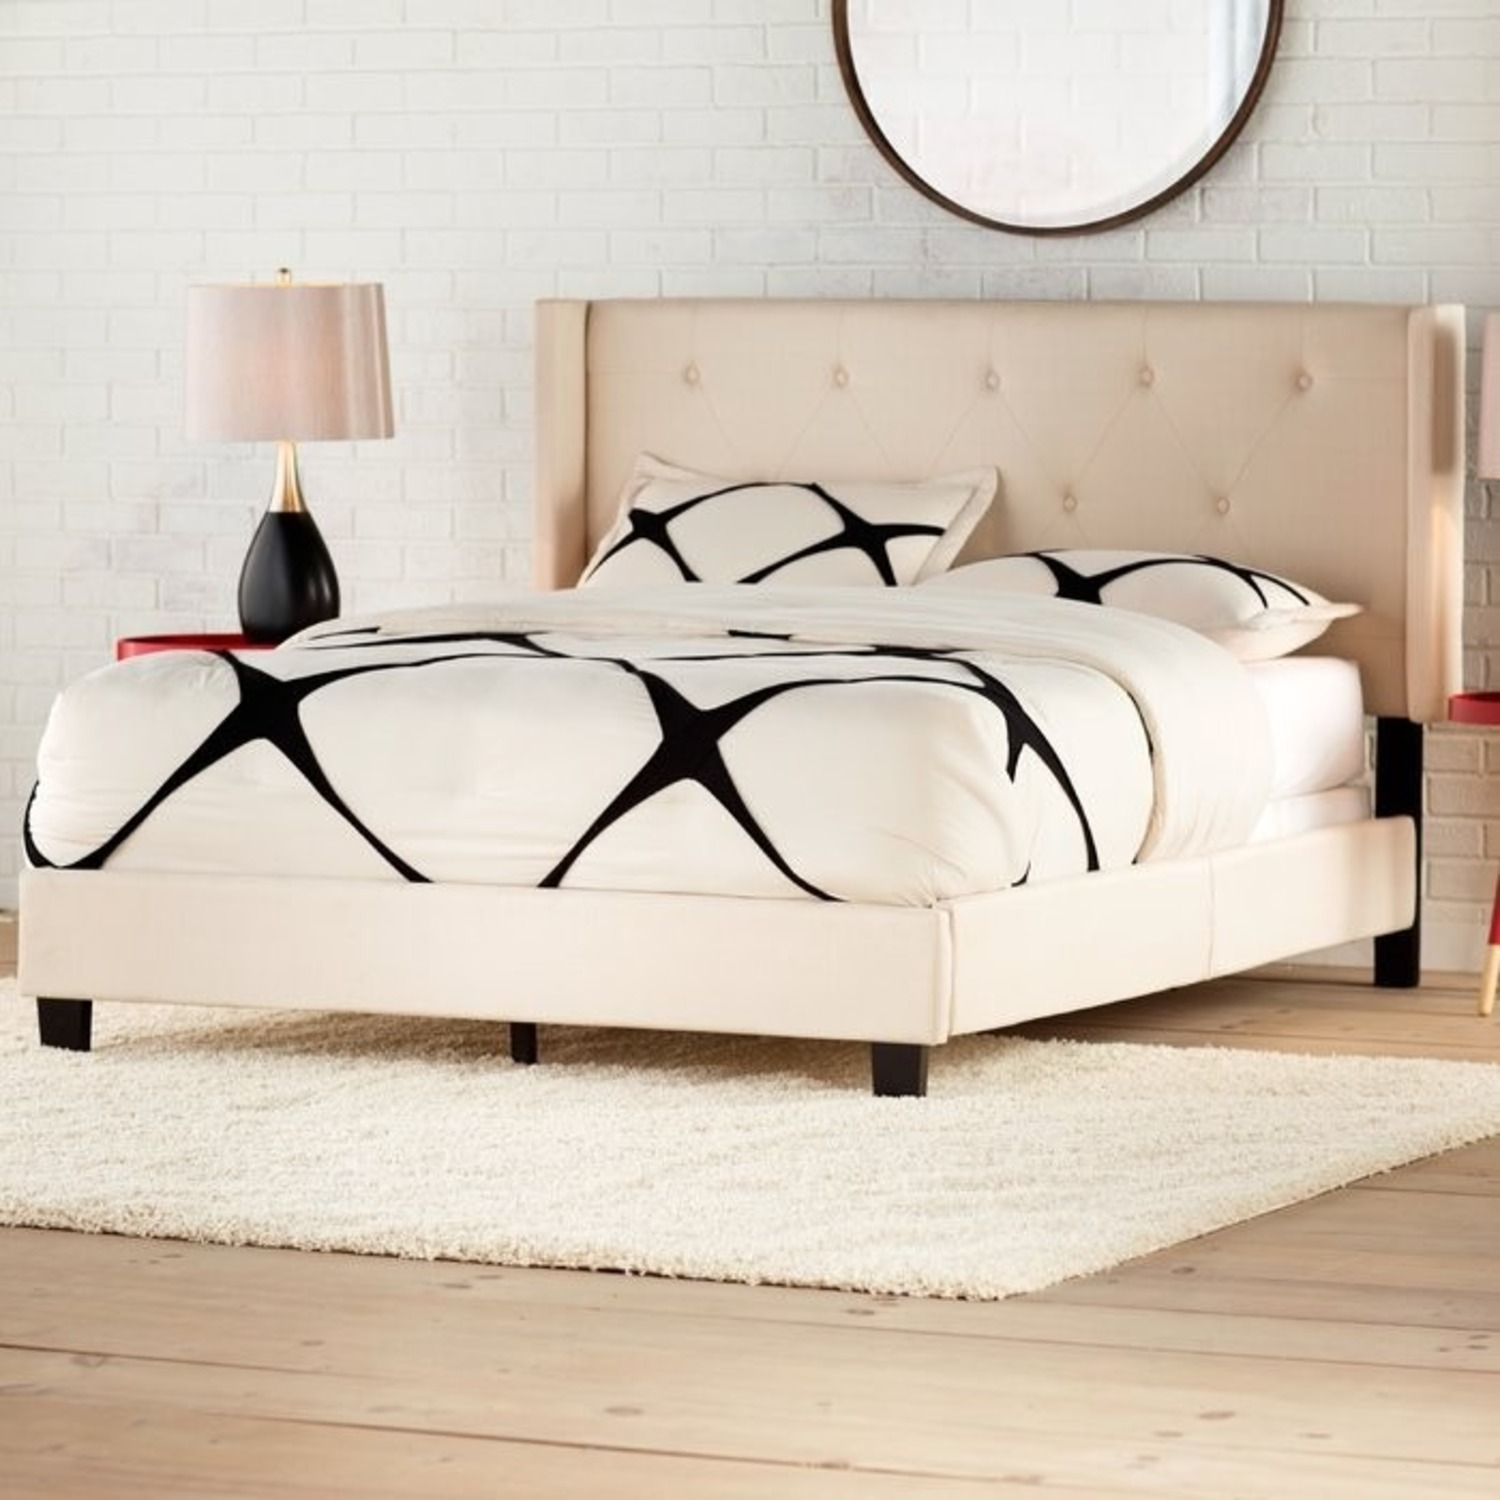 Wayfair Tufted Queen Linen Bed Frame w Attached Headboard - image-2